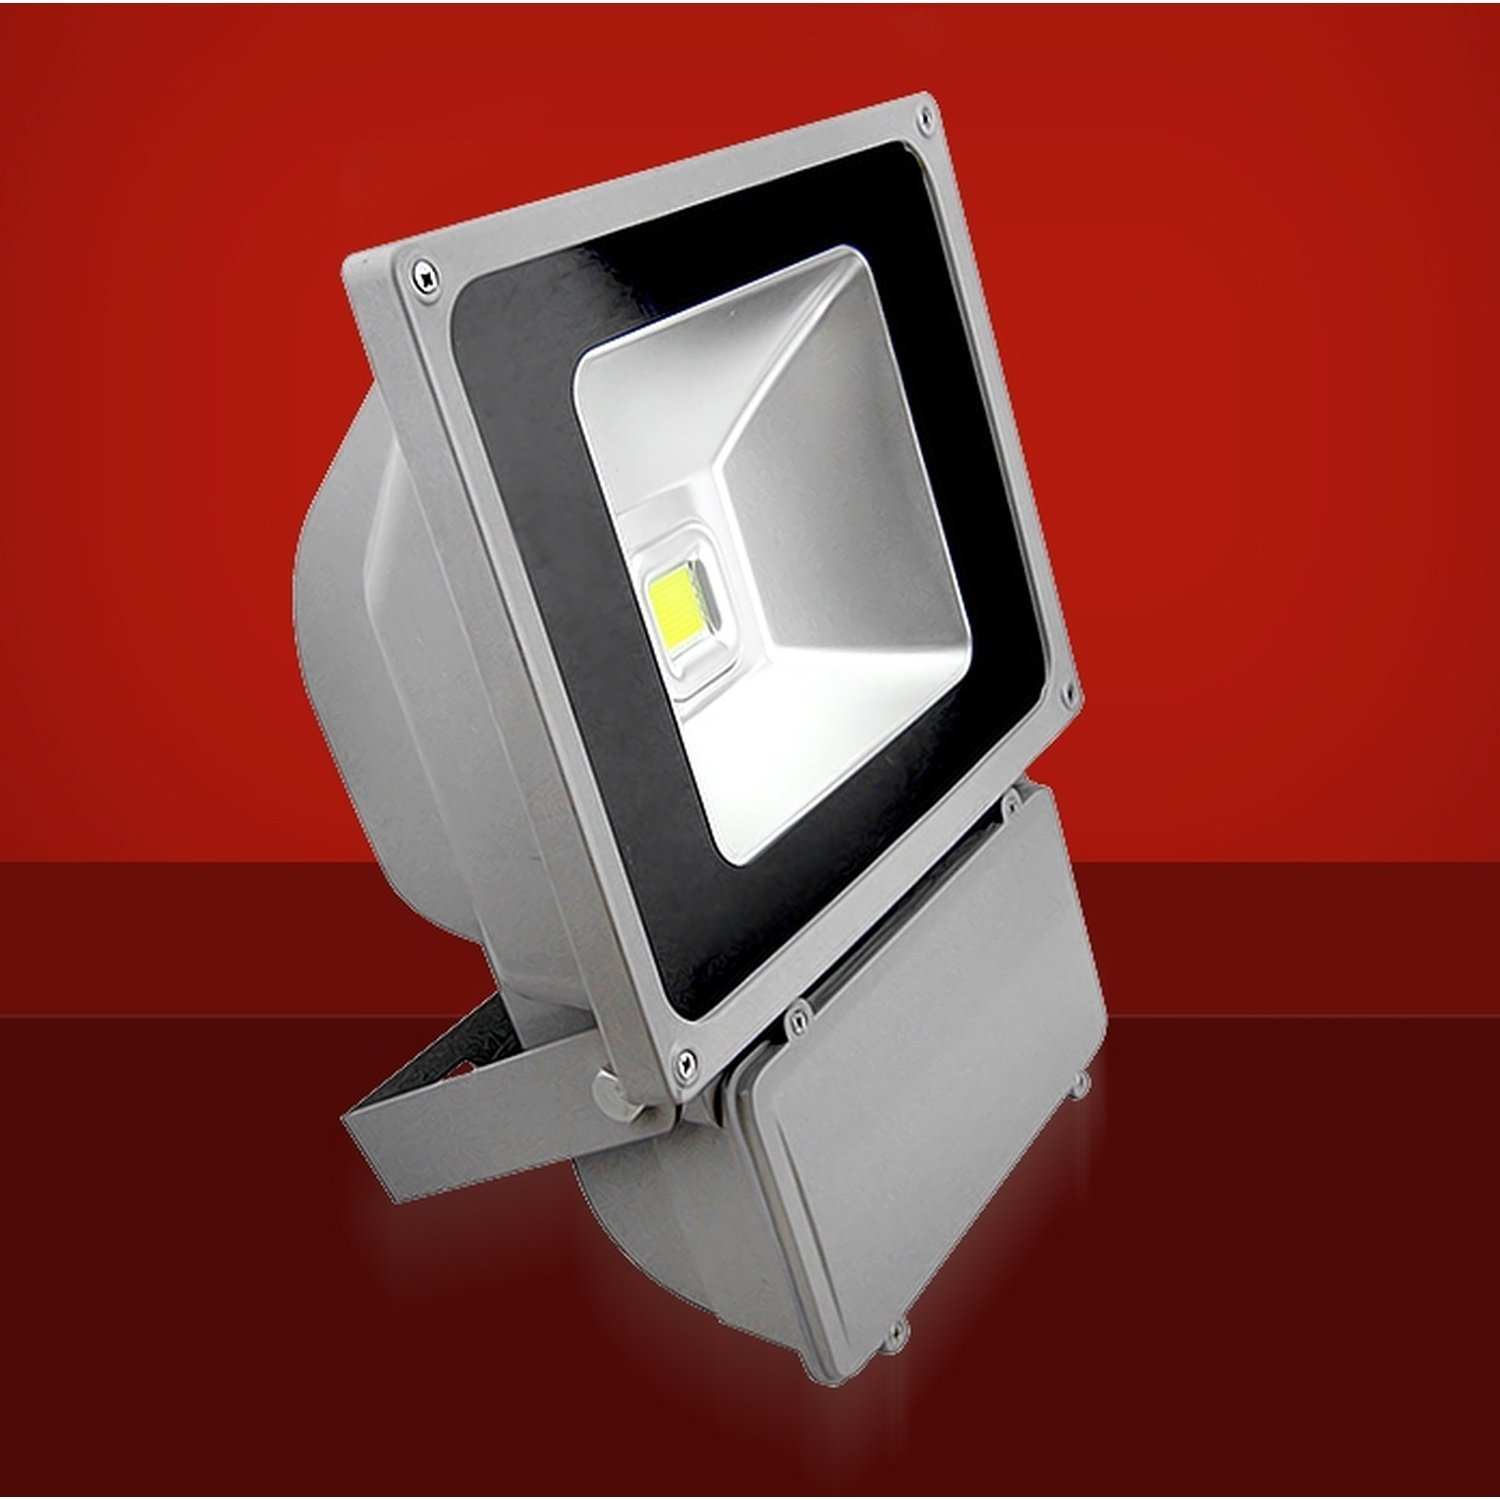 LED Spotlight Spotlight 70W 6500K Bright Light